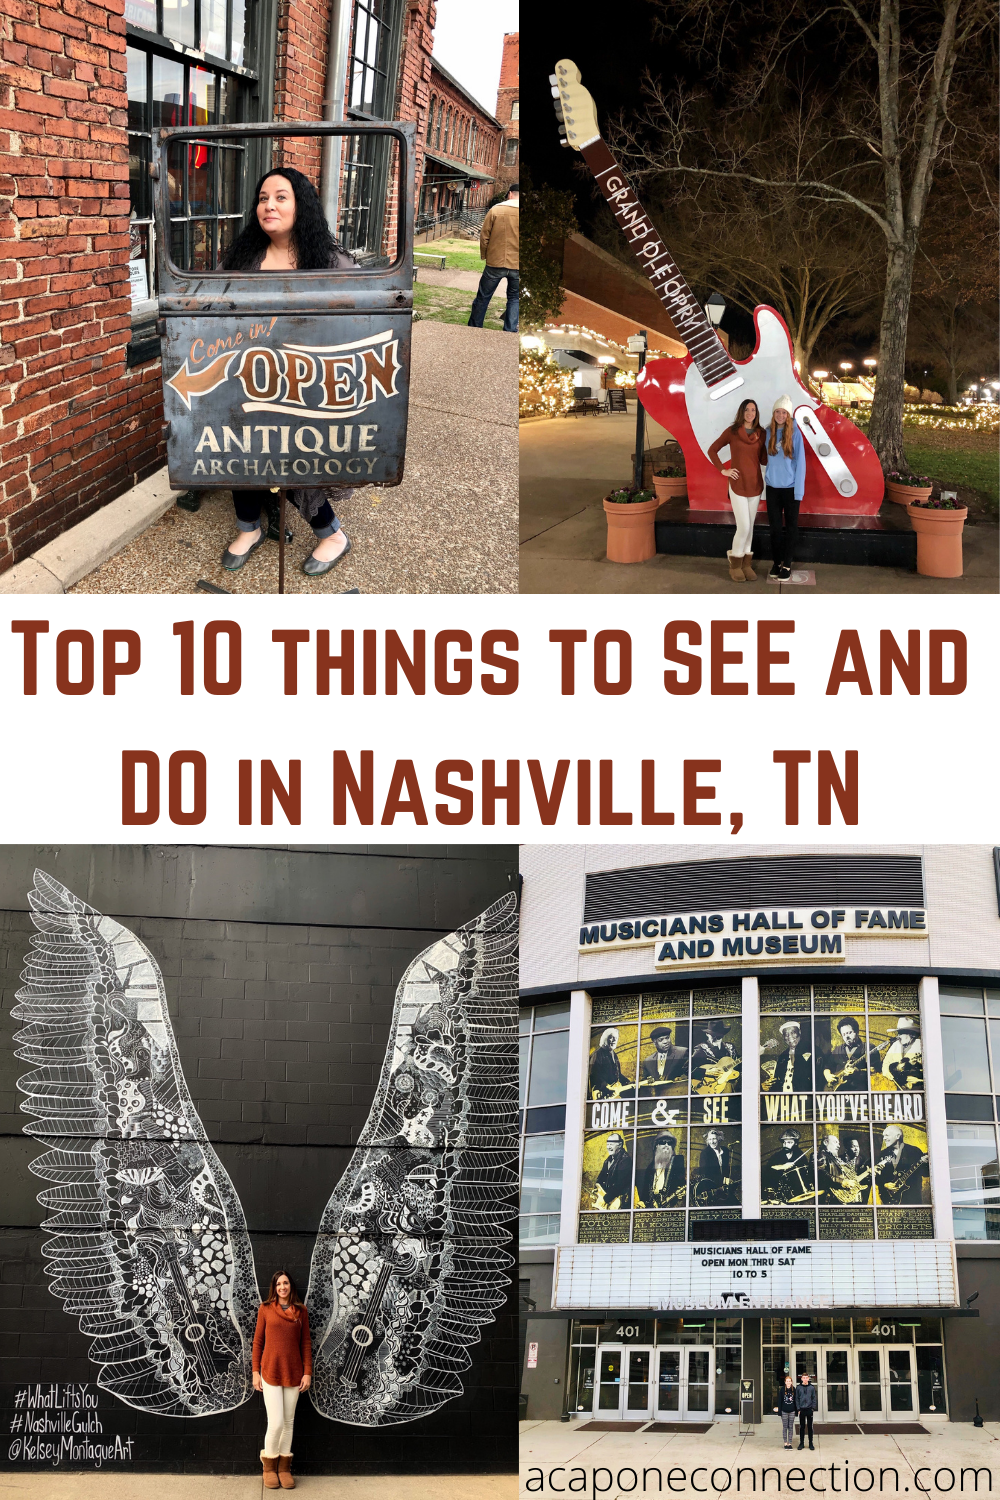 Top 10 things to see and do in Nashville, Tennessee